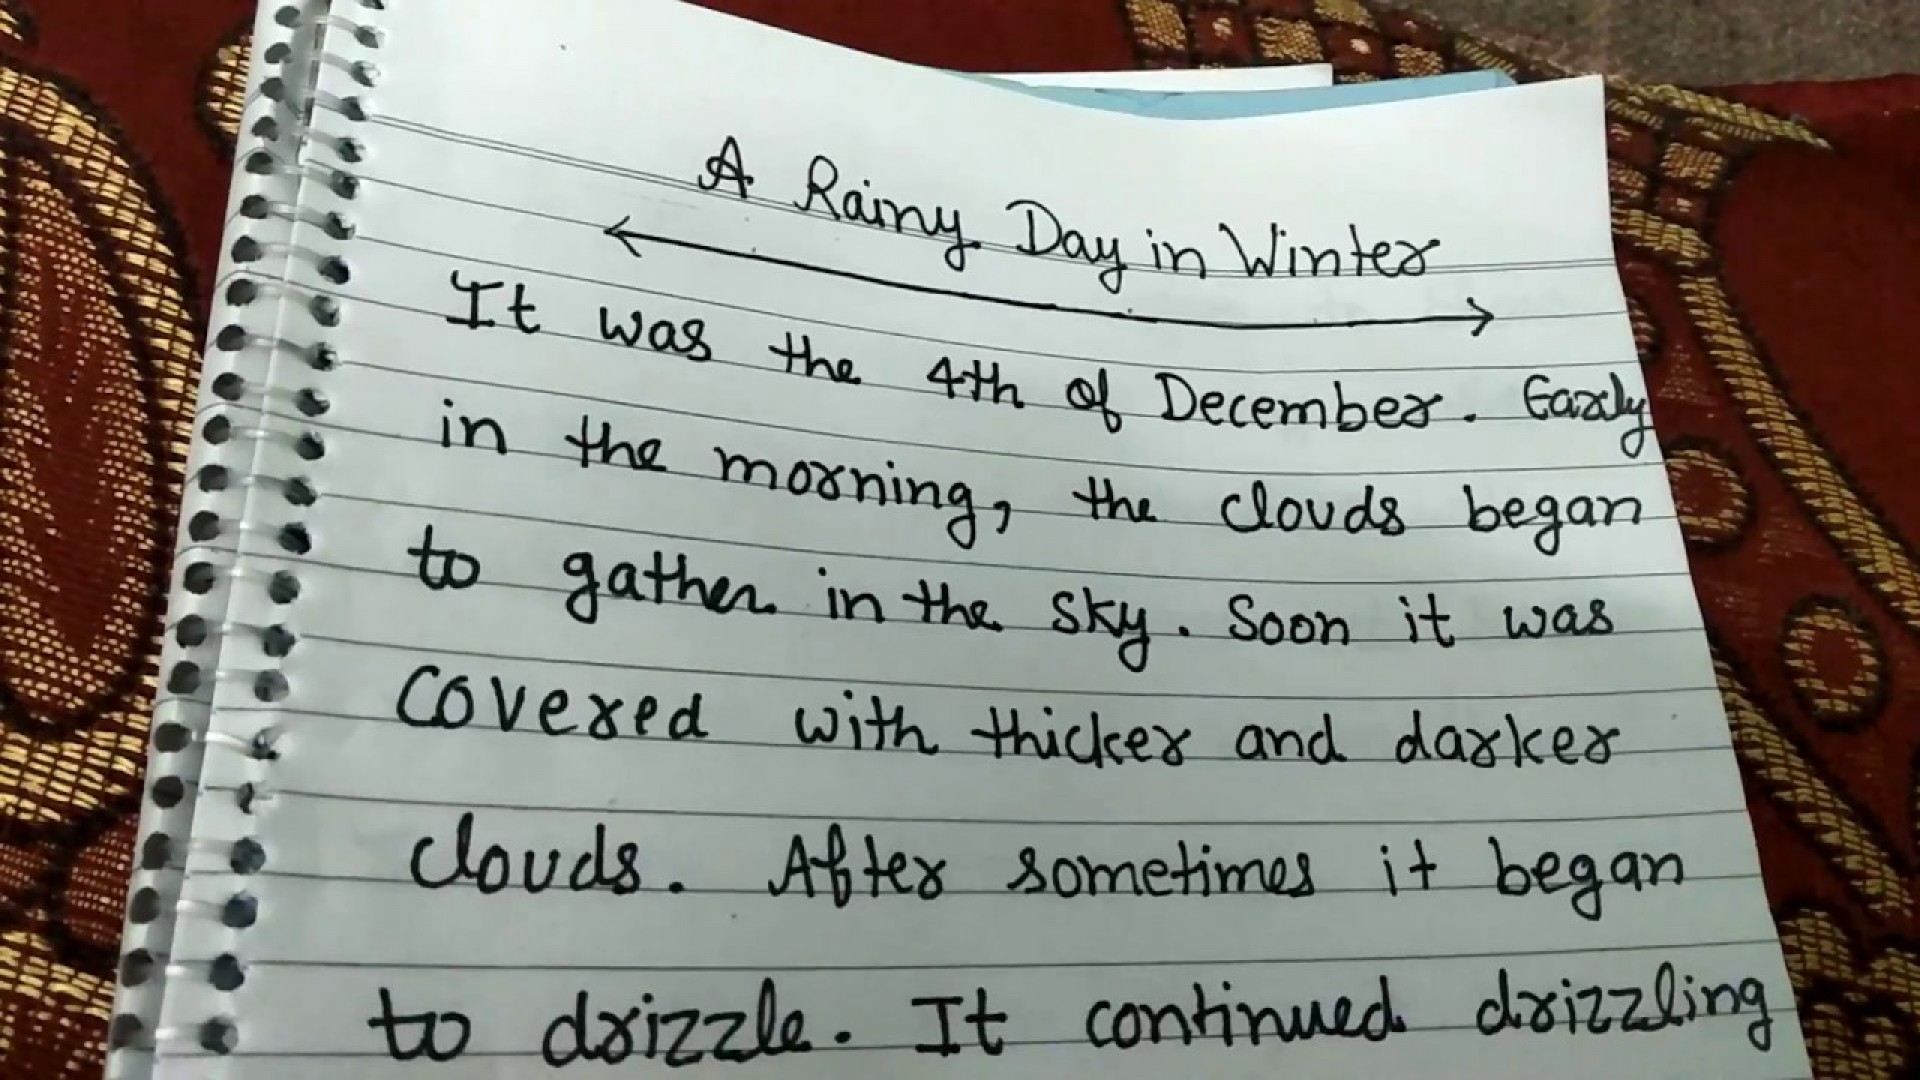 001 Maxresdefault Rainy Day Essay English Stupendous My In For Class 6 10 1920